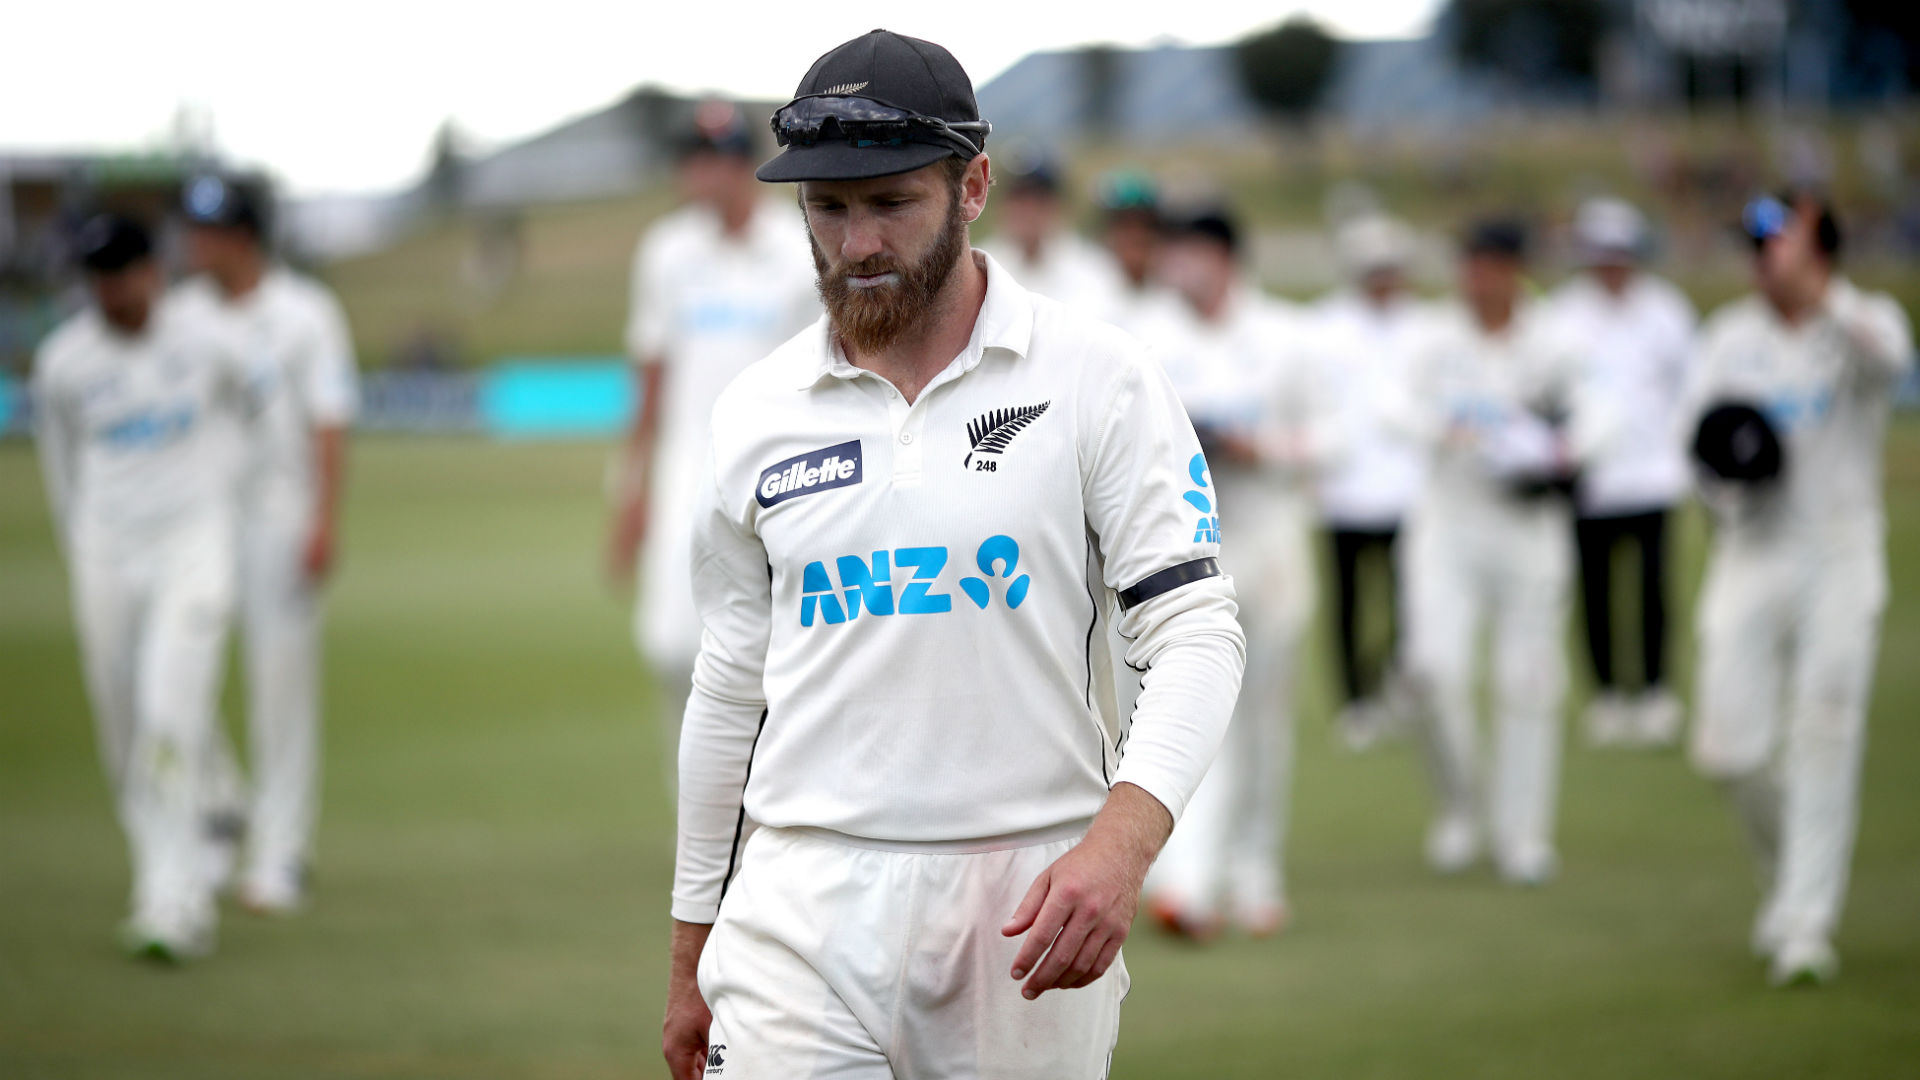 New Zealand aim to extend winning streak in second Test